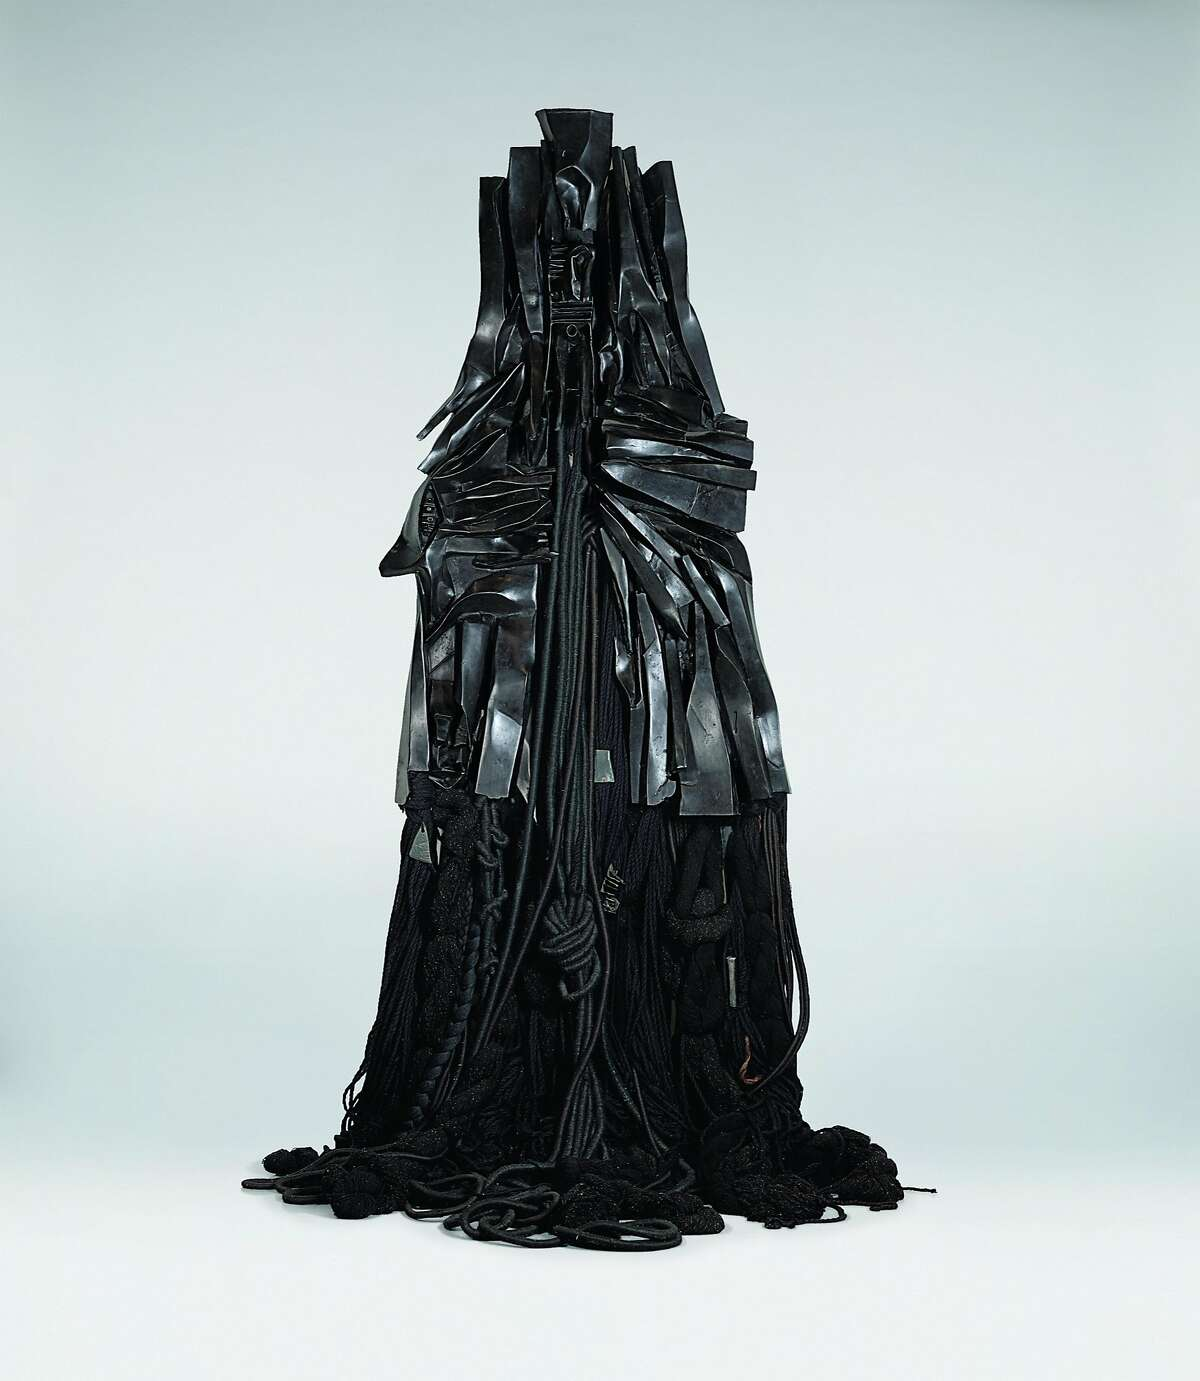 Barbara Chase-Riboud: Confessions for Myself, 1972; bronze paint, and wool; 120 x 40 x 12 in.; purchased with funds from the H.W. Anderson Charitable Foundation